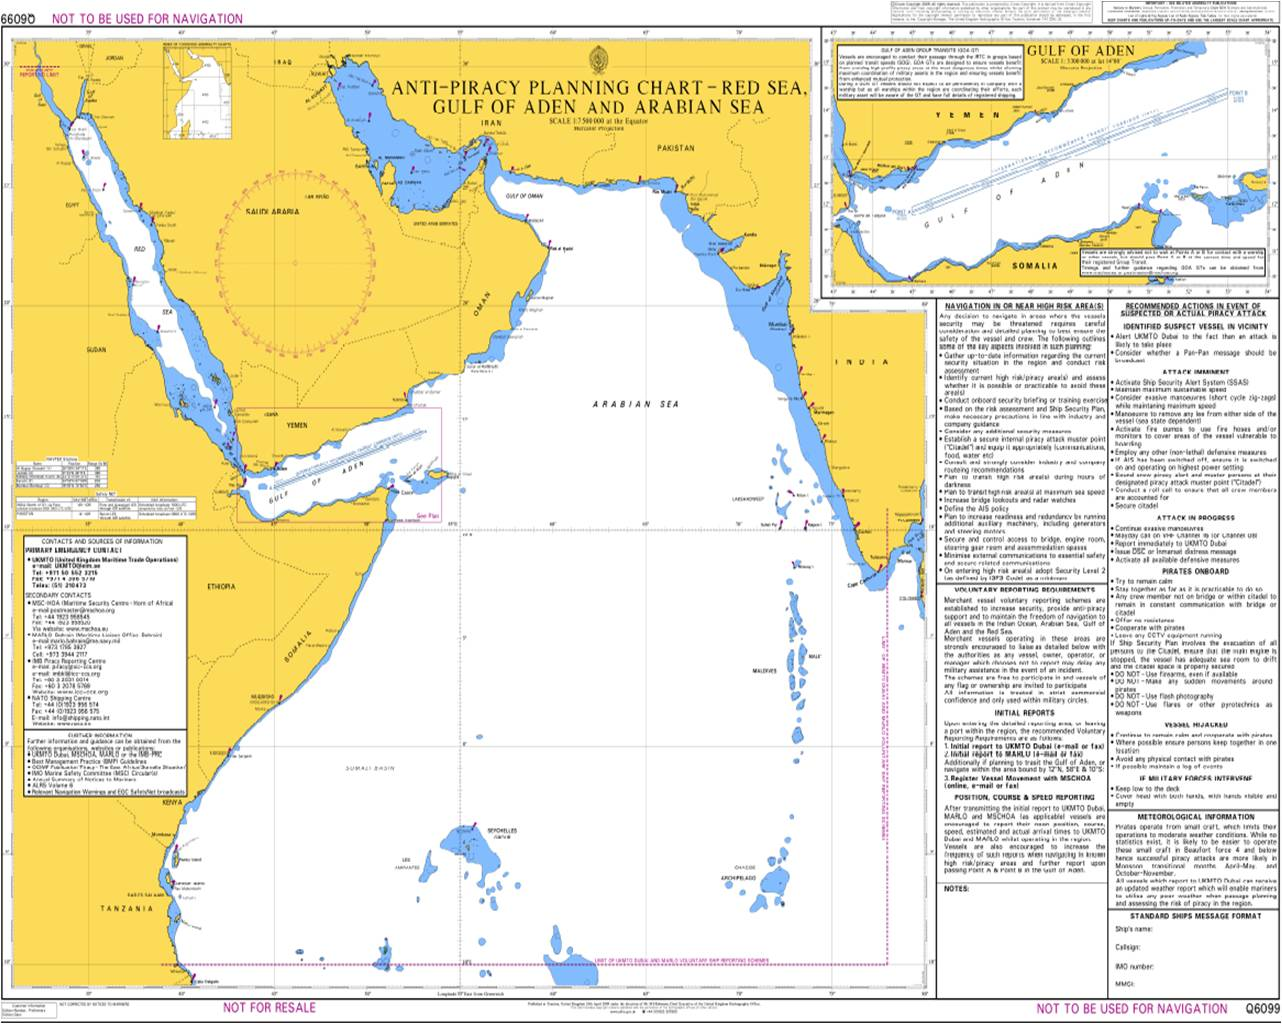 Admiralty chart developed to assist mariners in navigating piracy high risk zones of the NW Indian Ocean.